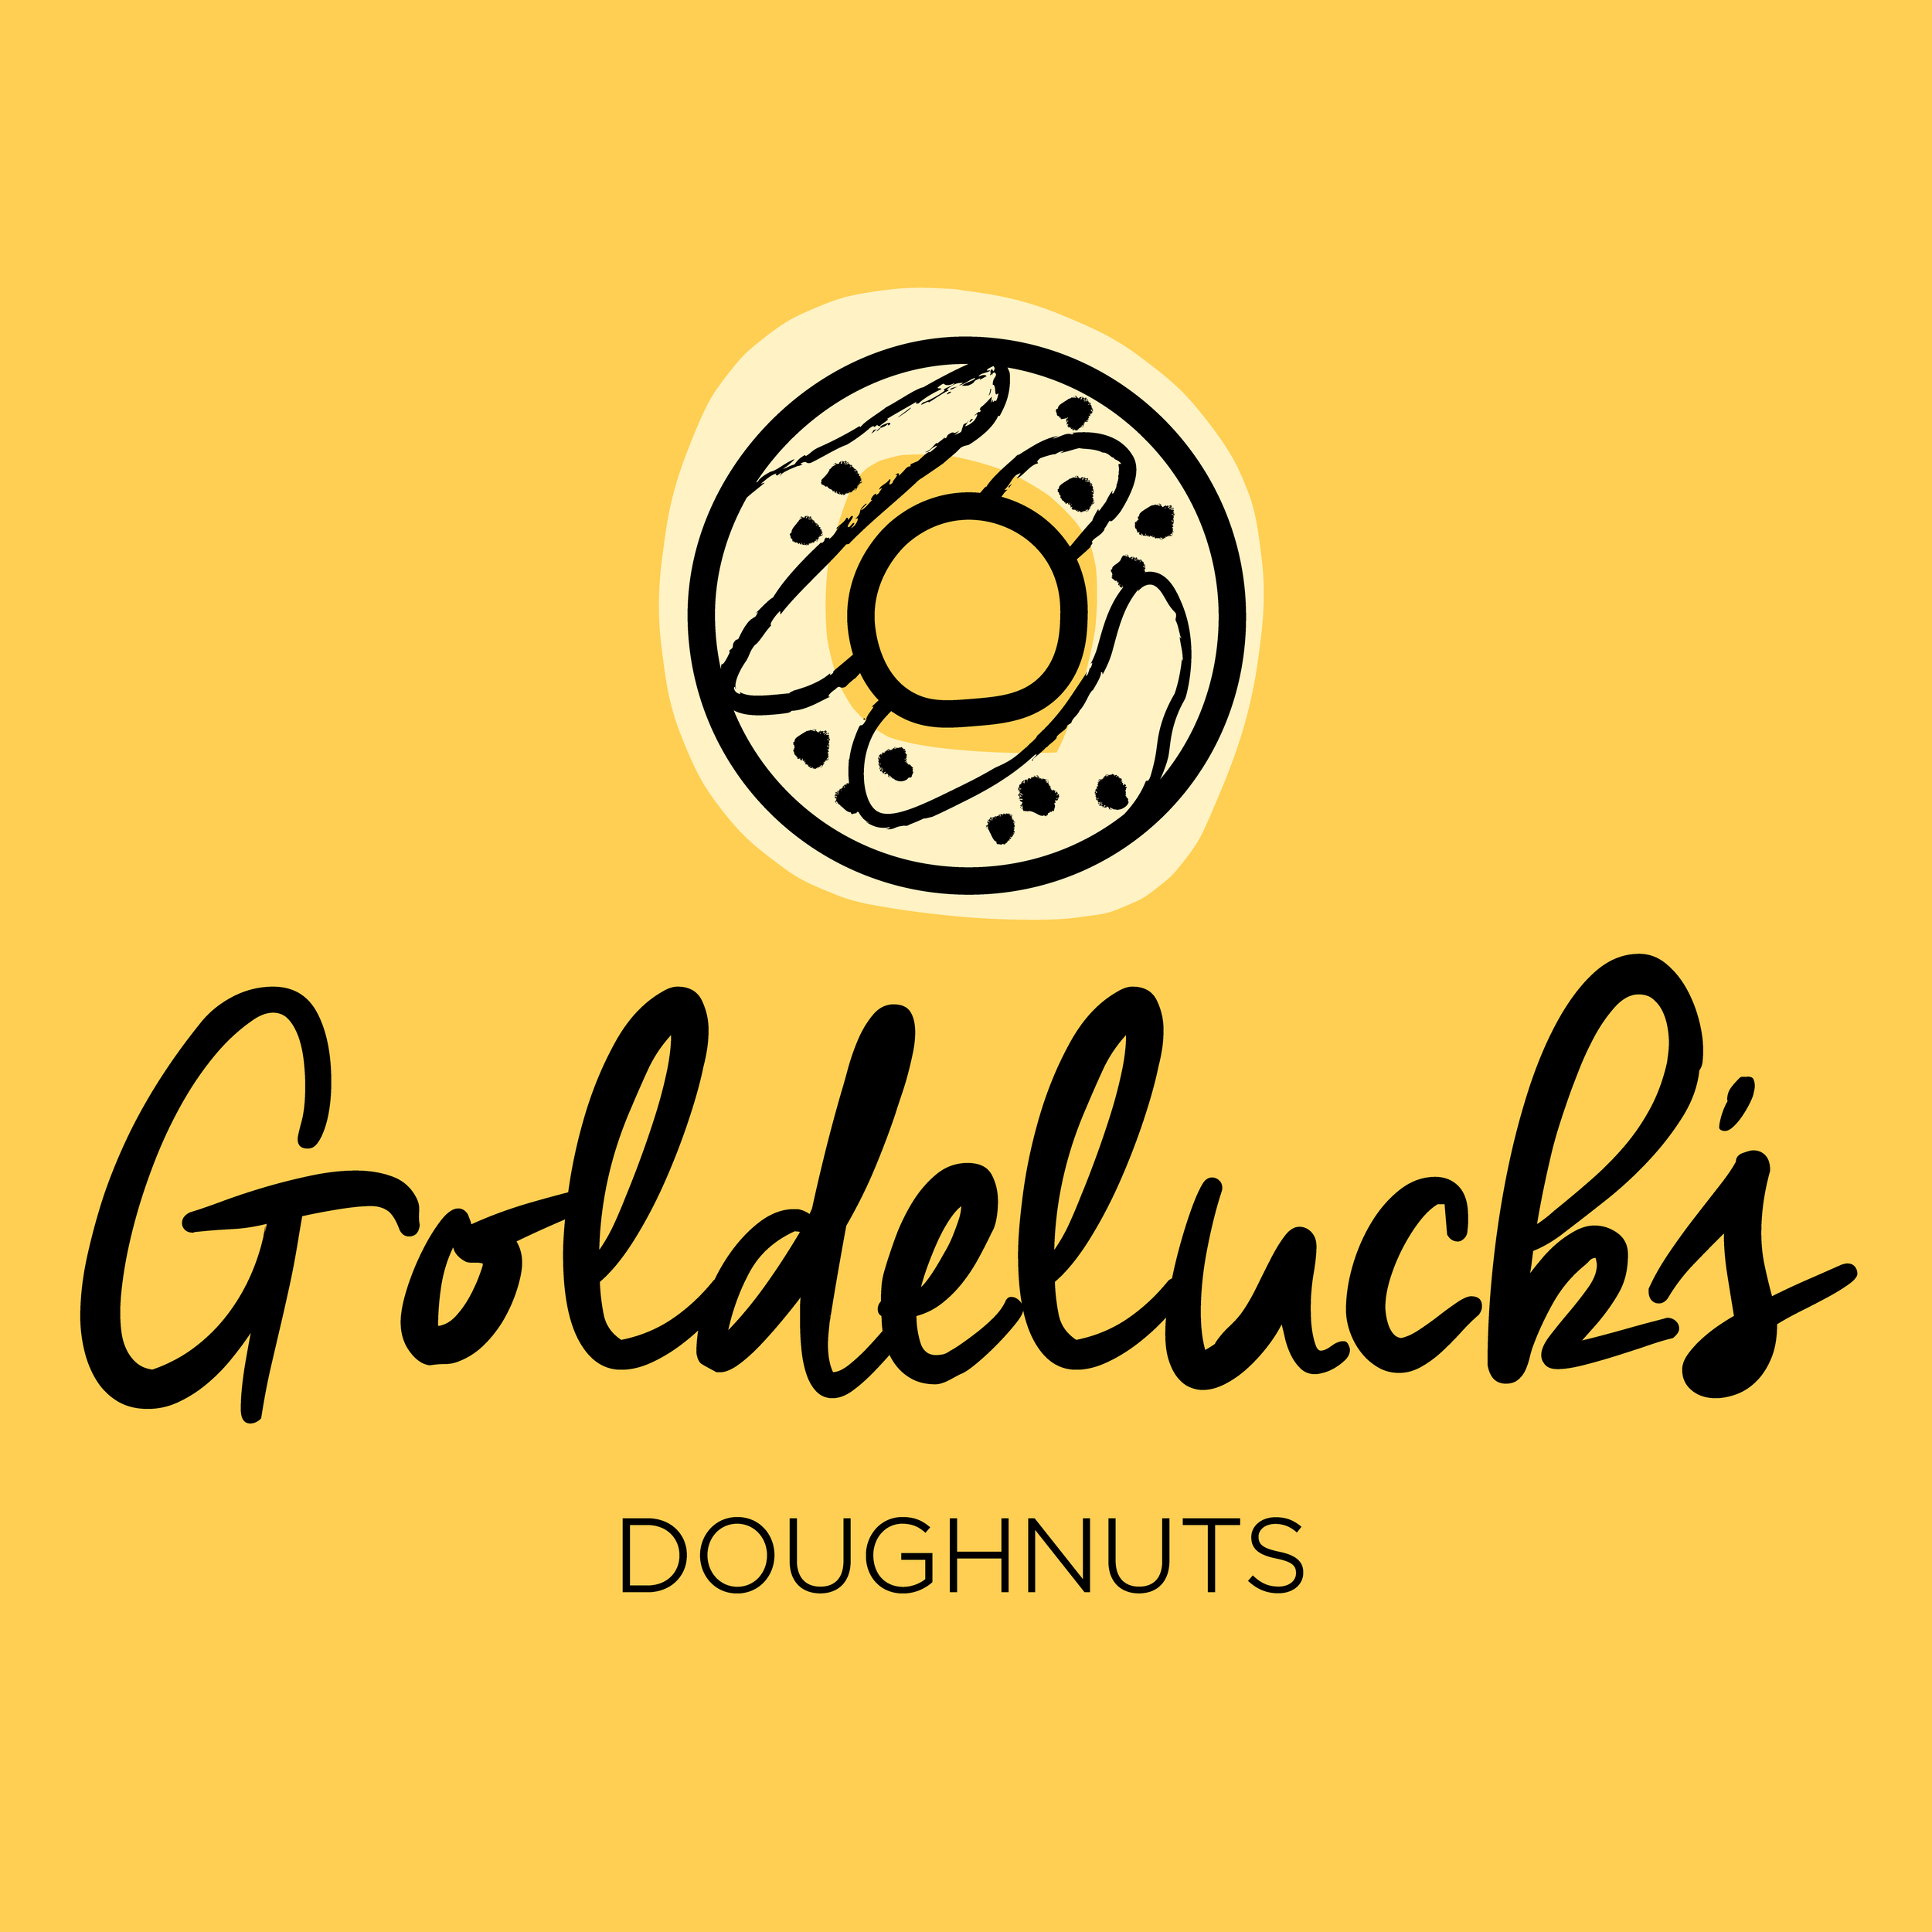 golde-final-2-doughnut-logo-yellow-bg__1_.png